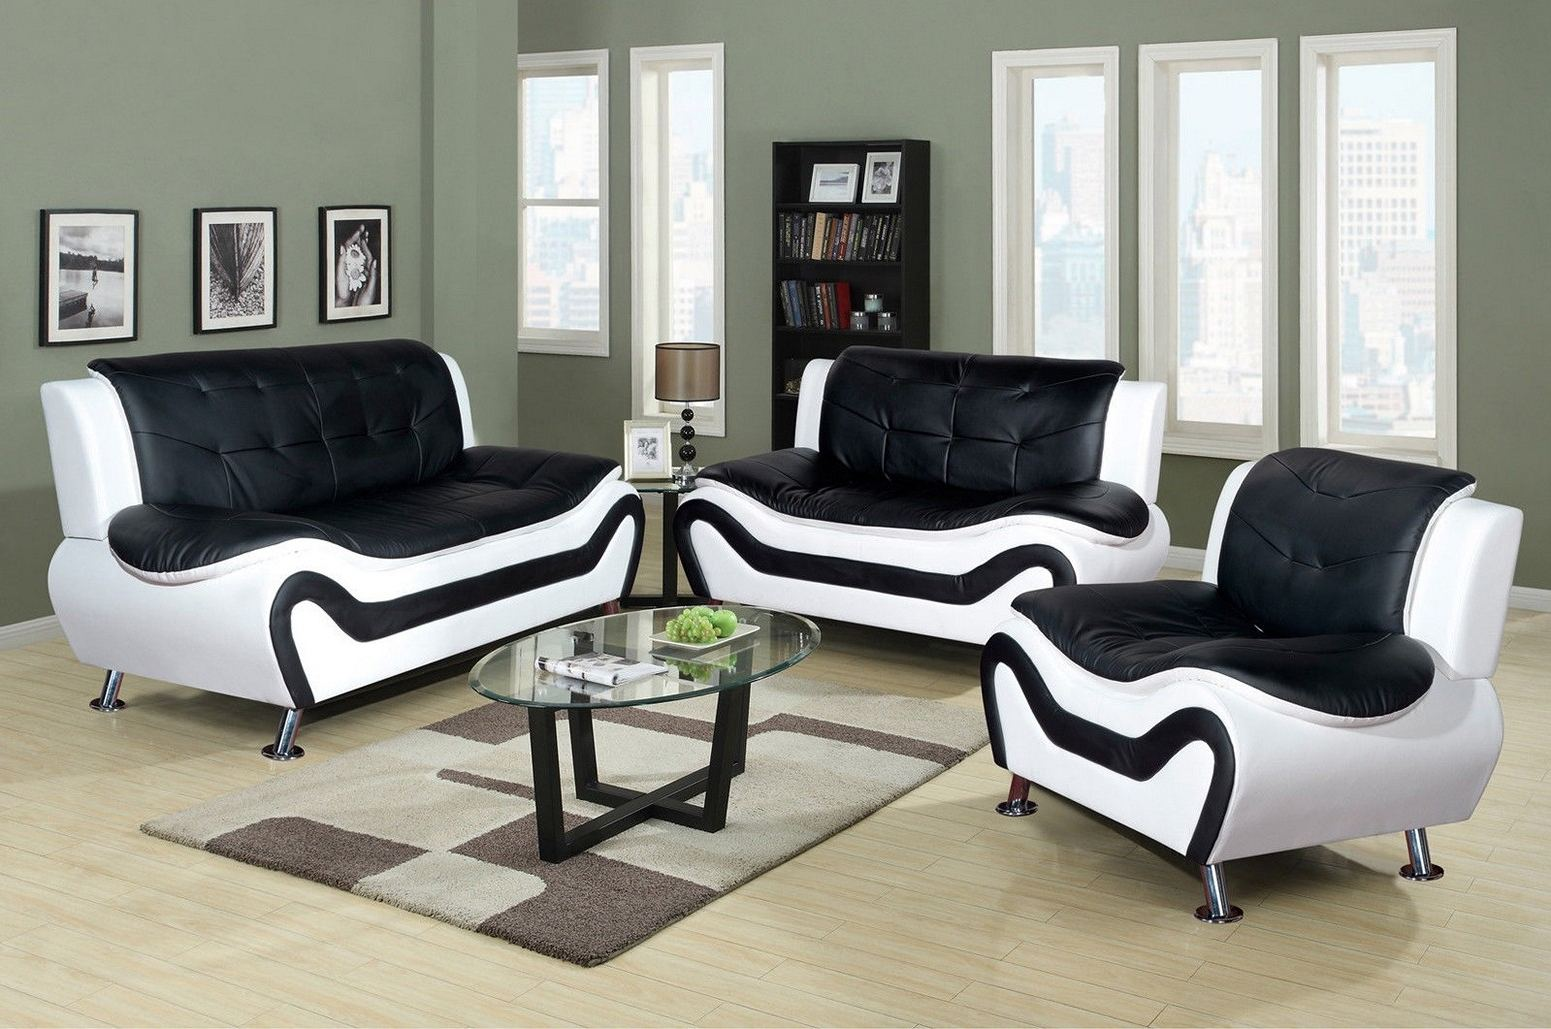 3 piece living room furniture set lounge furniture piece faux leather contemporary living room sofa love seat chair set black 3piece sets